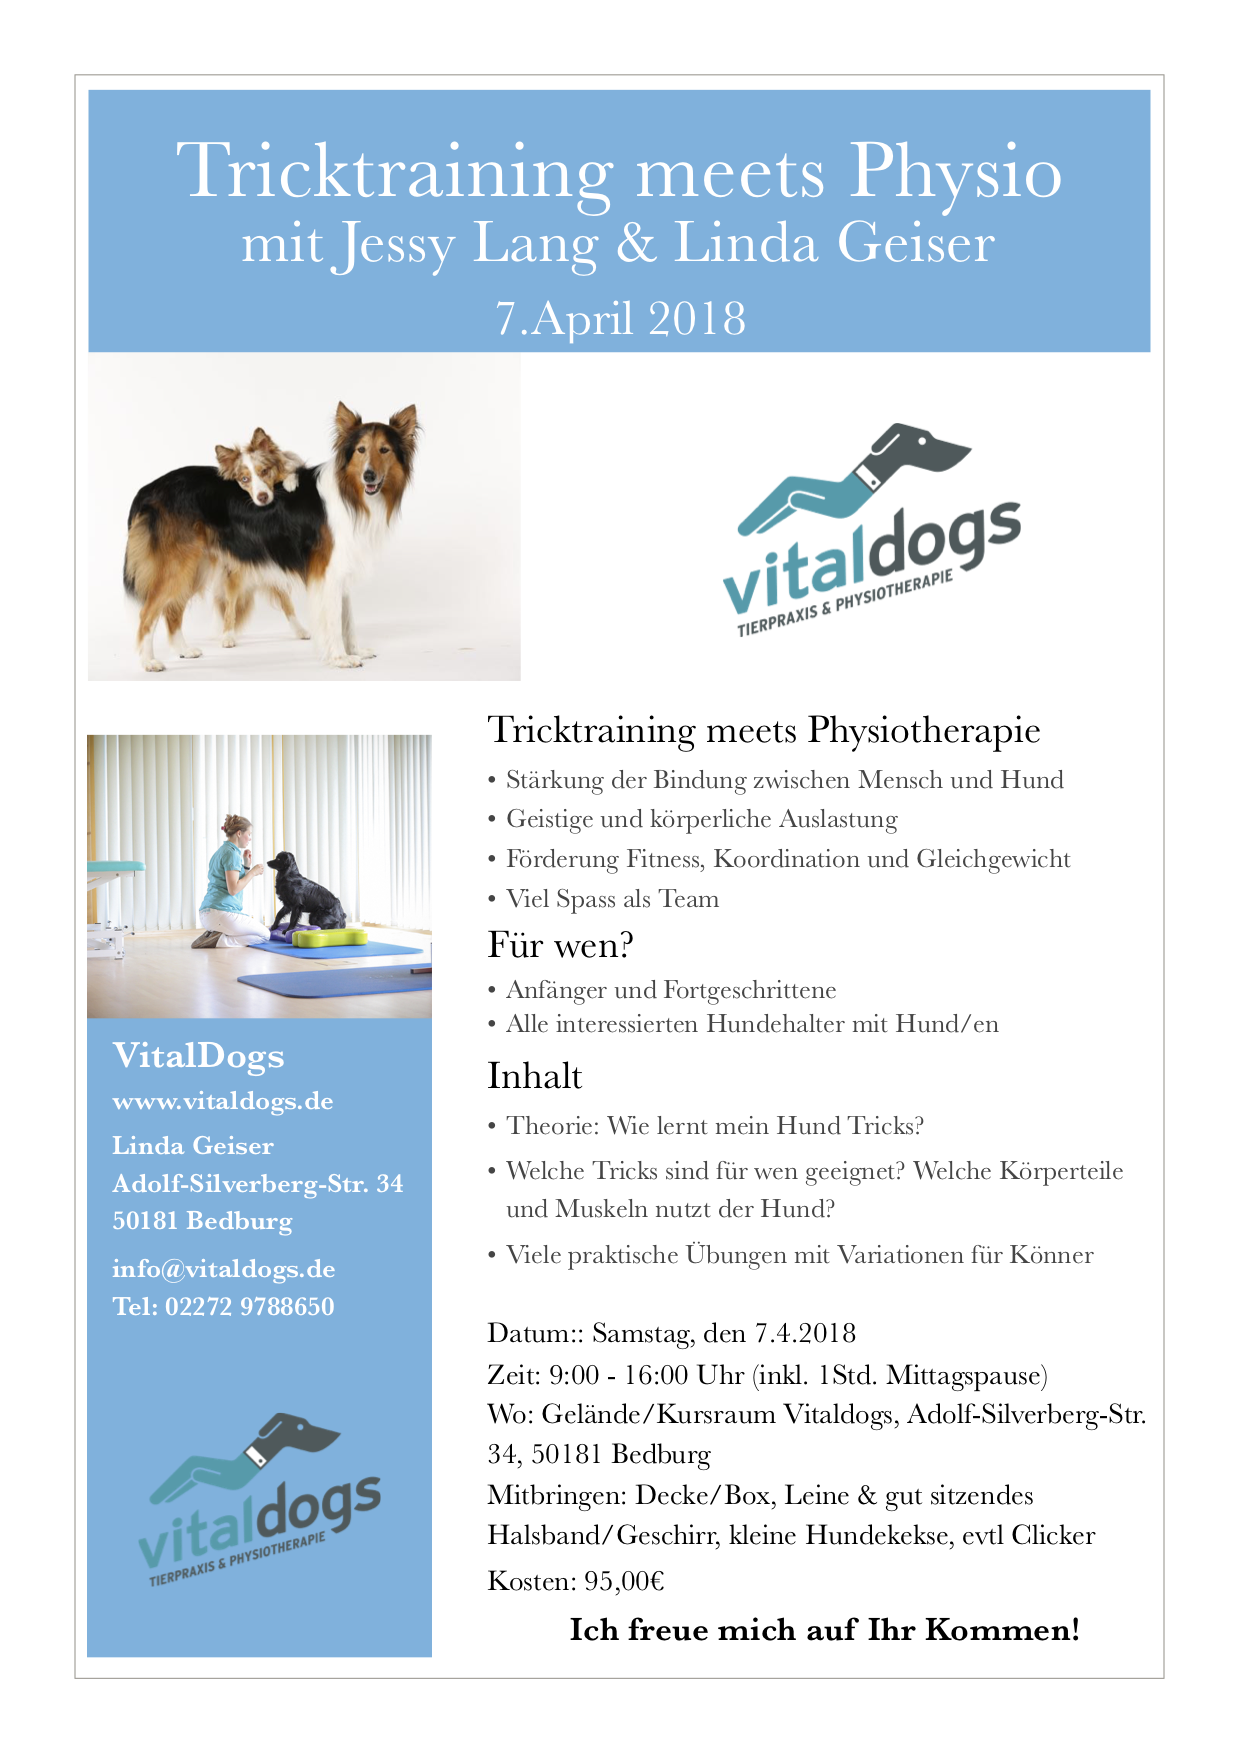 Trickdogs & Hundephysio